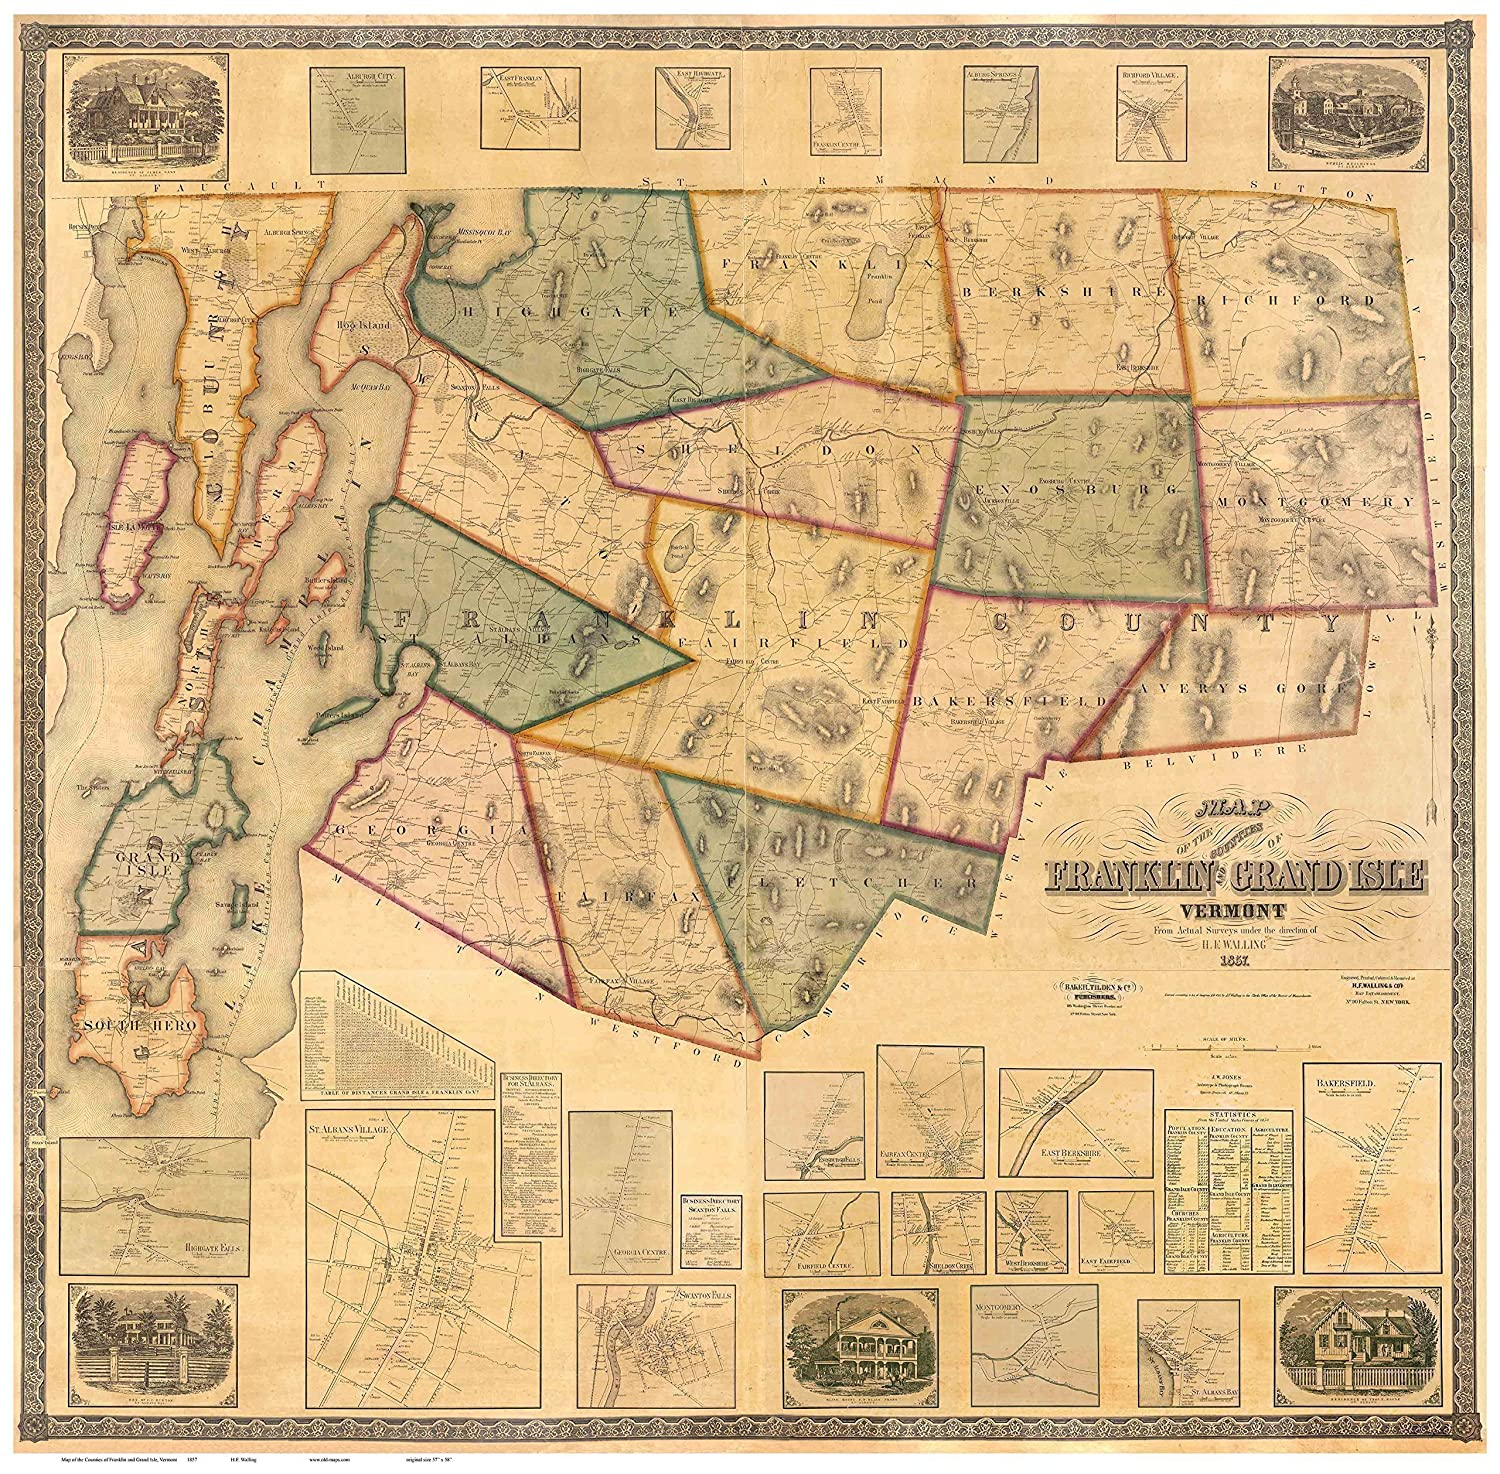 Amazon.com: Franklin & Grand Isle Counties Vermont 1857 ...